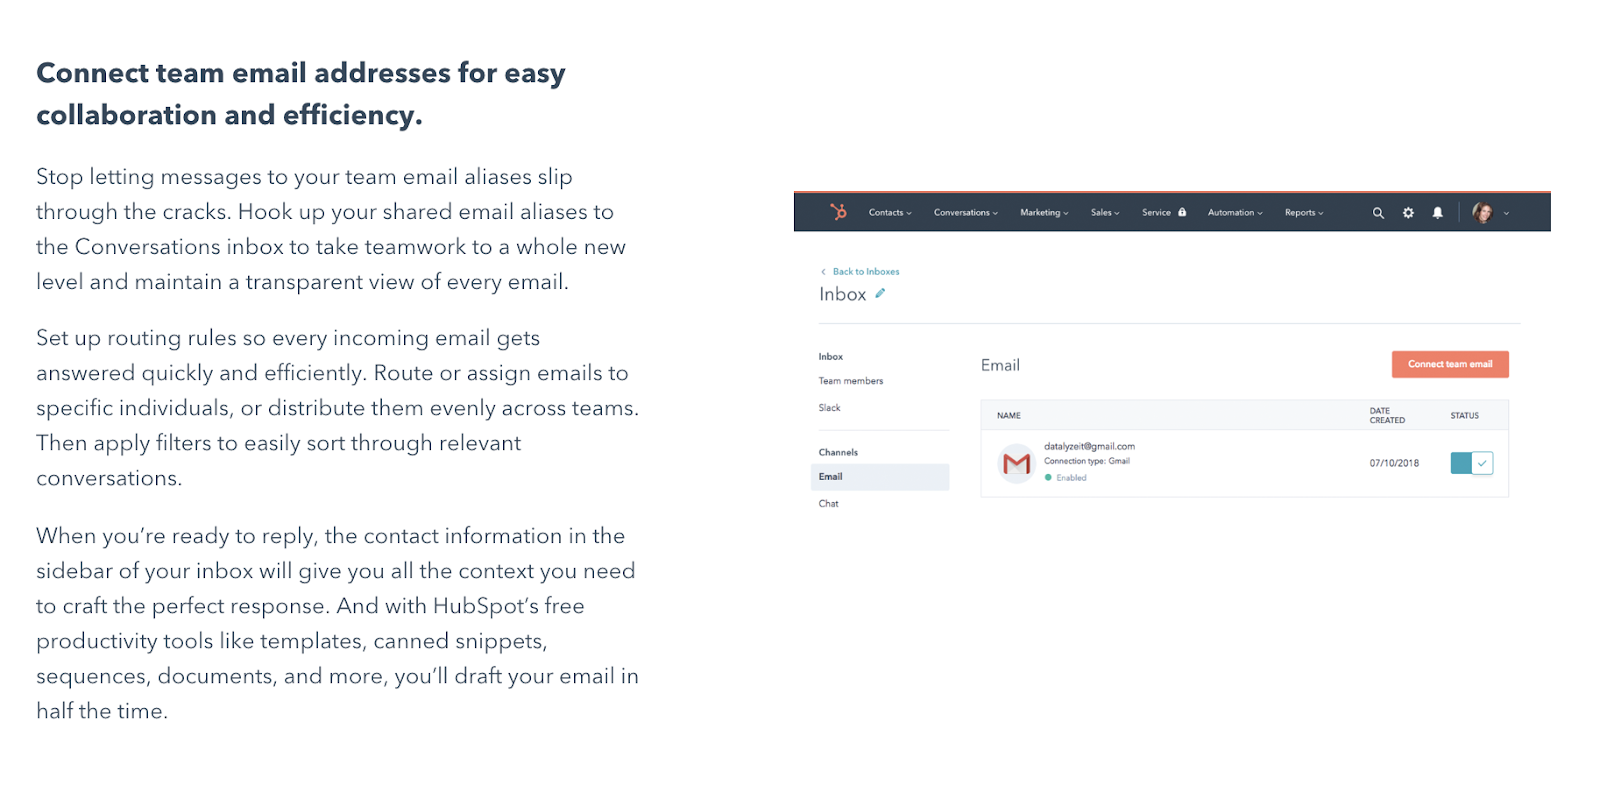 HubSpot conversations copy audit of their images